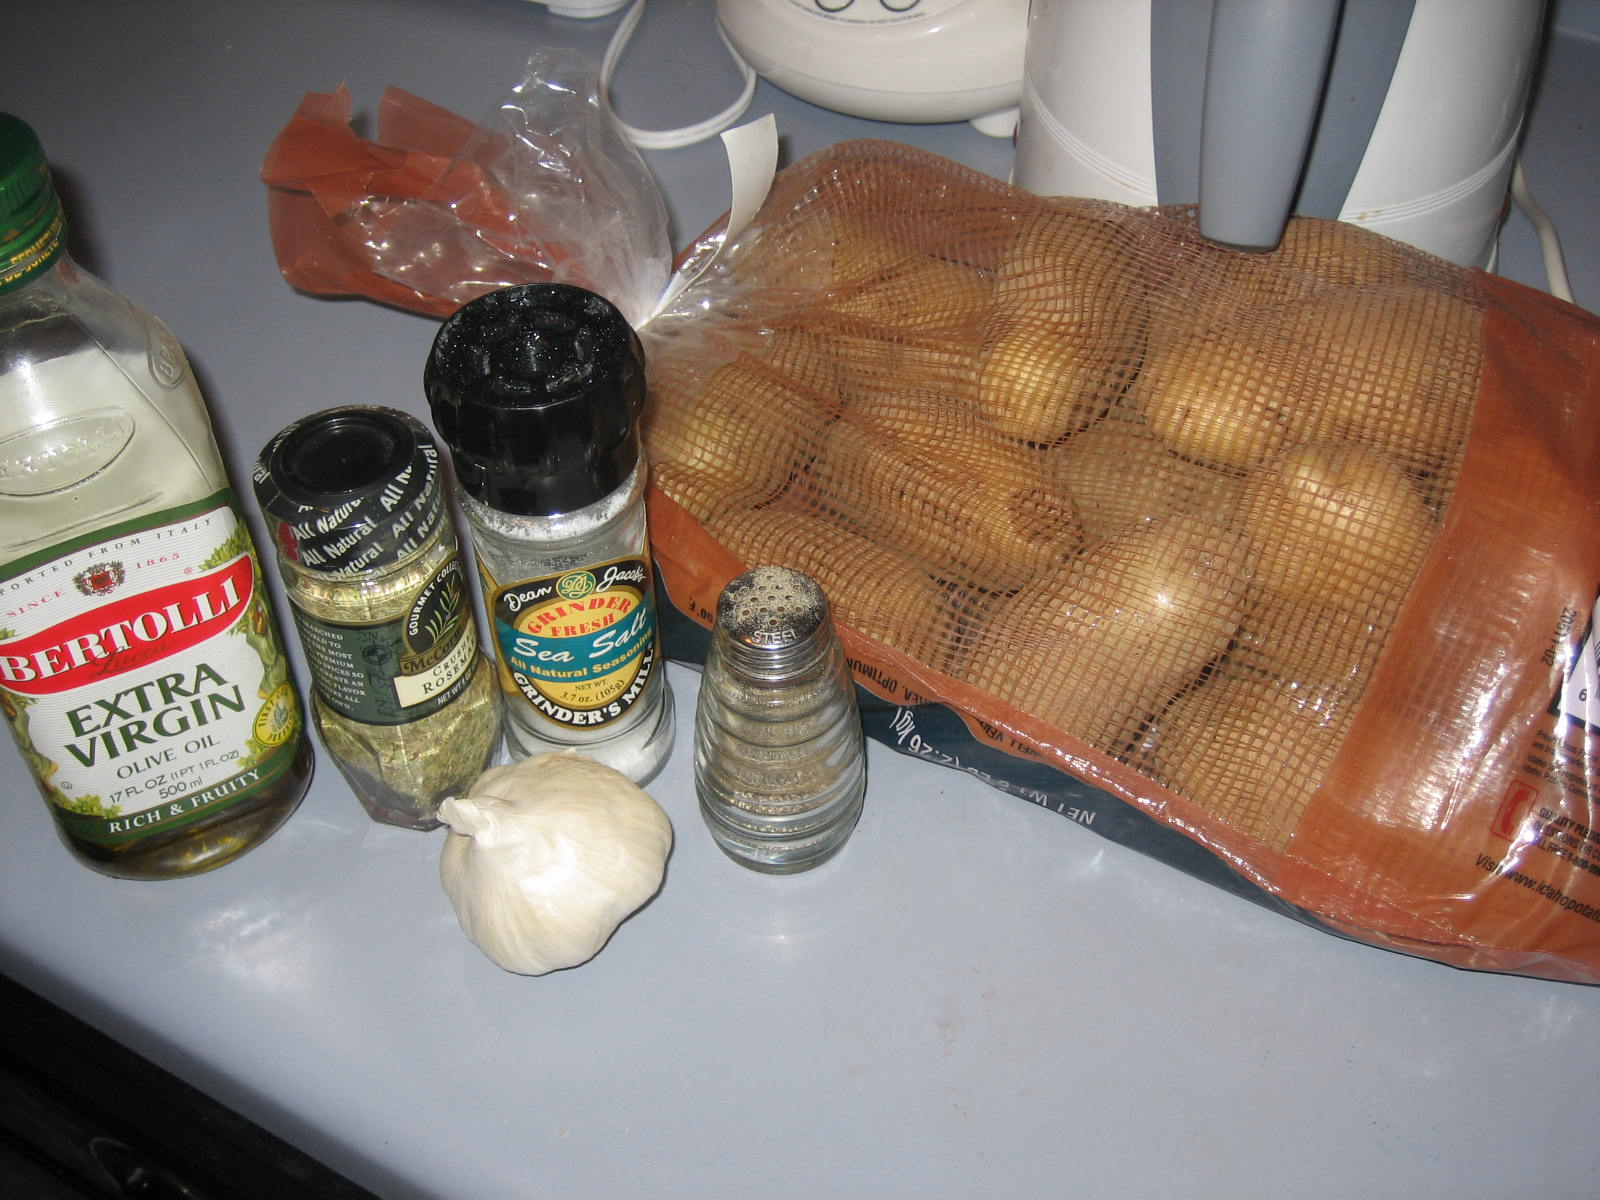 Roast potato ingredients